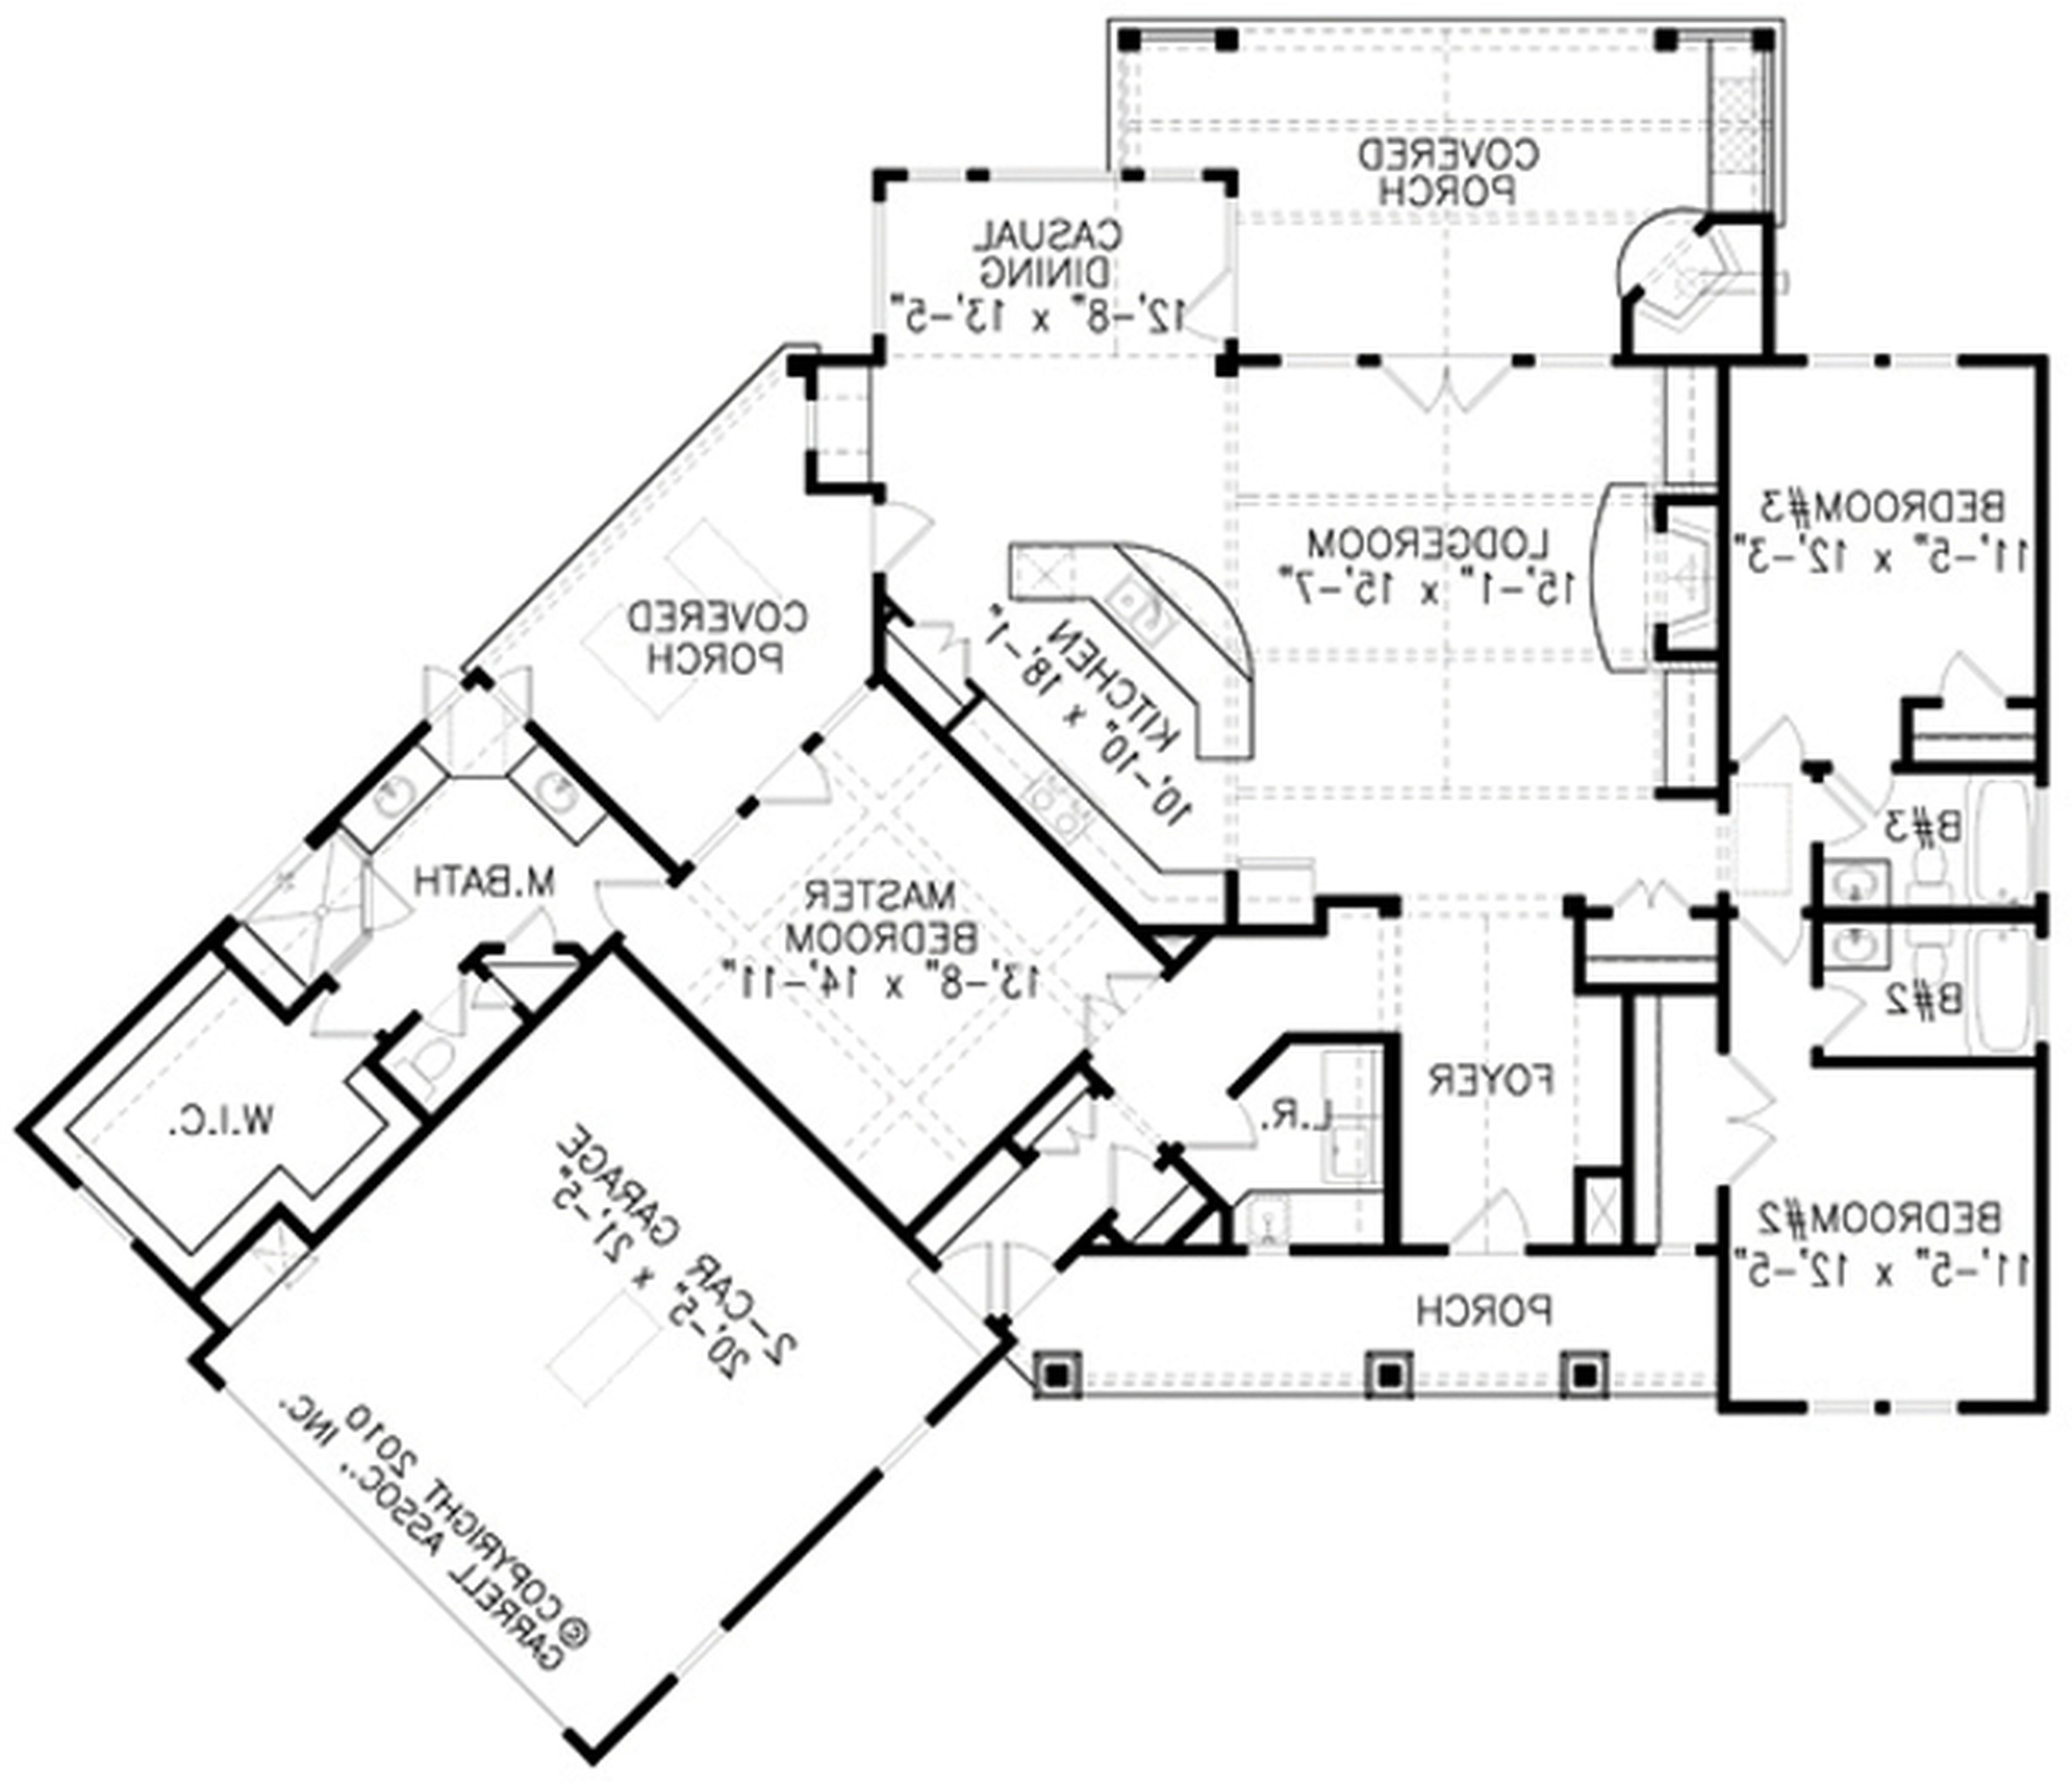 Living Dining Drawing Plan Modern House Plans Free: Kitchen Autocad Drawing At GetDrawings.com